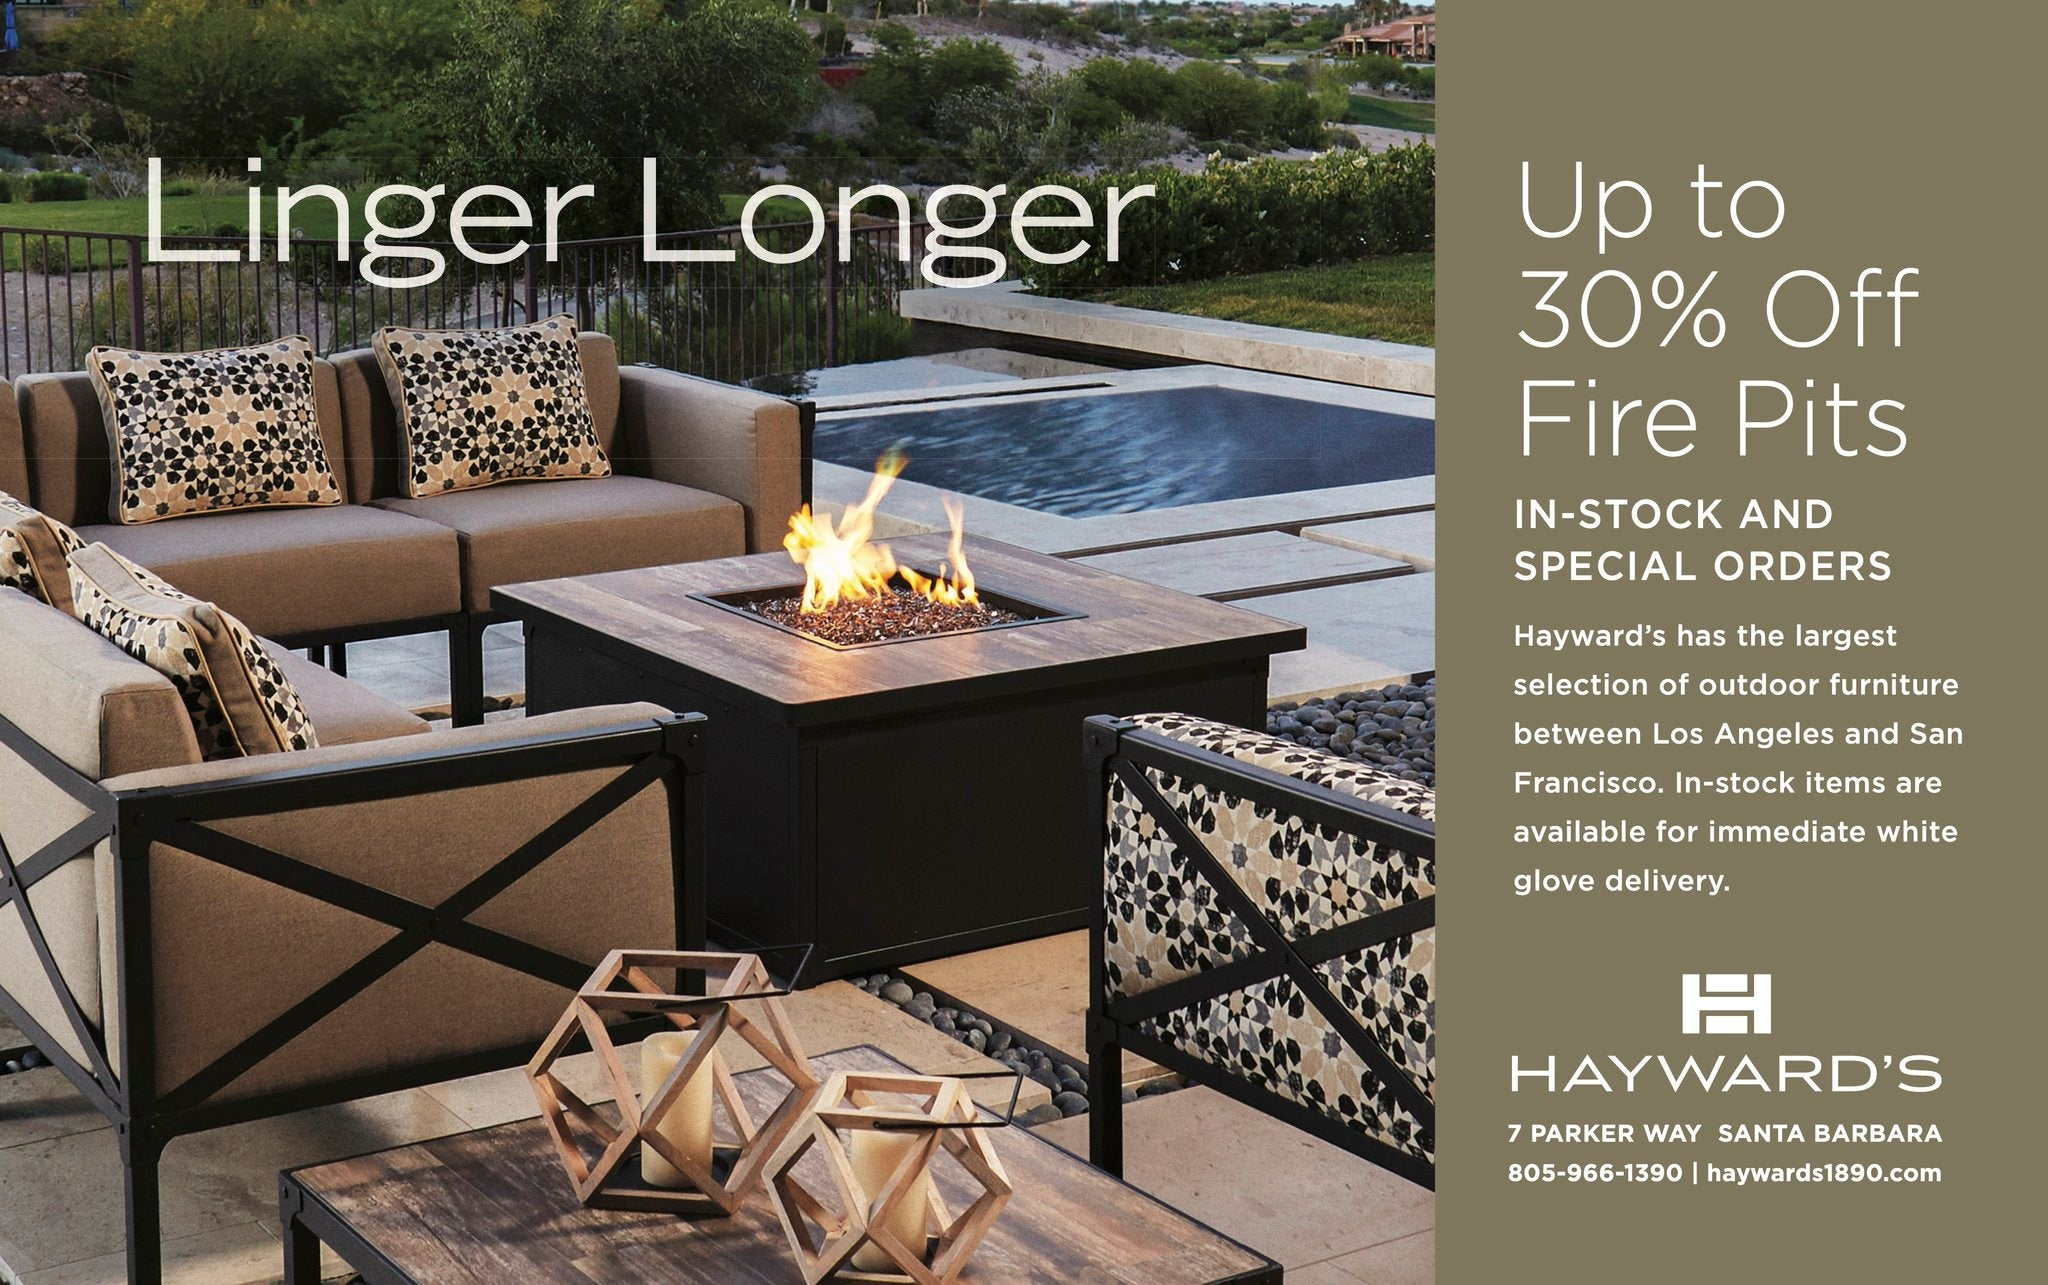 Hayward's Patio of Santa Barbara. Wicker and Teak outdoor furniture on sale. Plus, umbrellas and cushions.